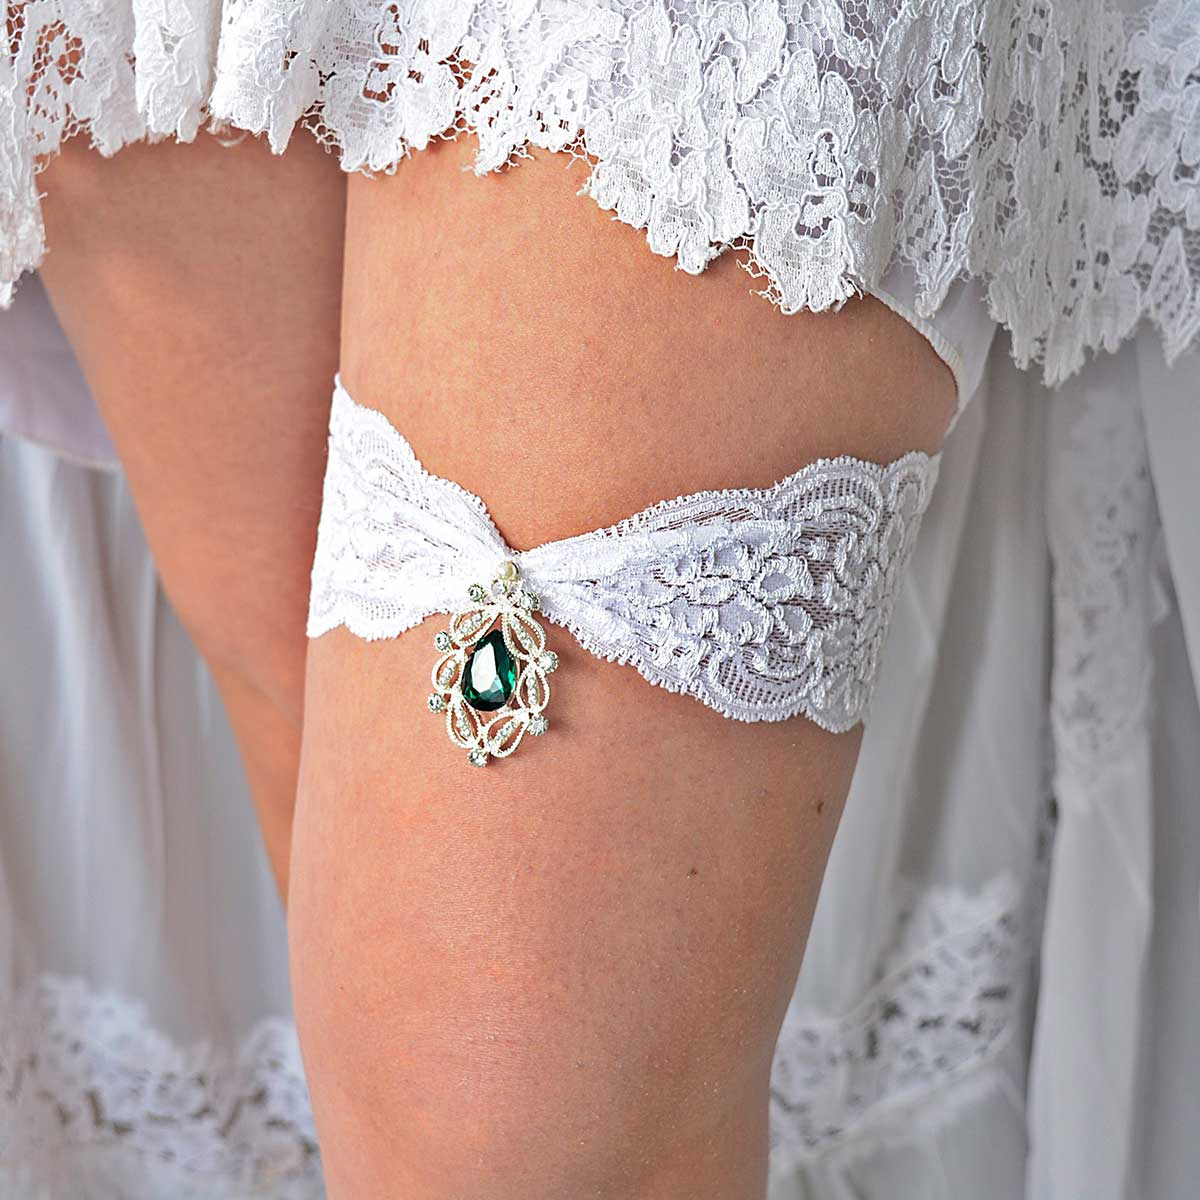 Clear & Green Rhinestone Bridal Garter Set With White Lace